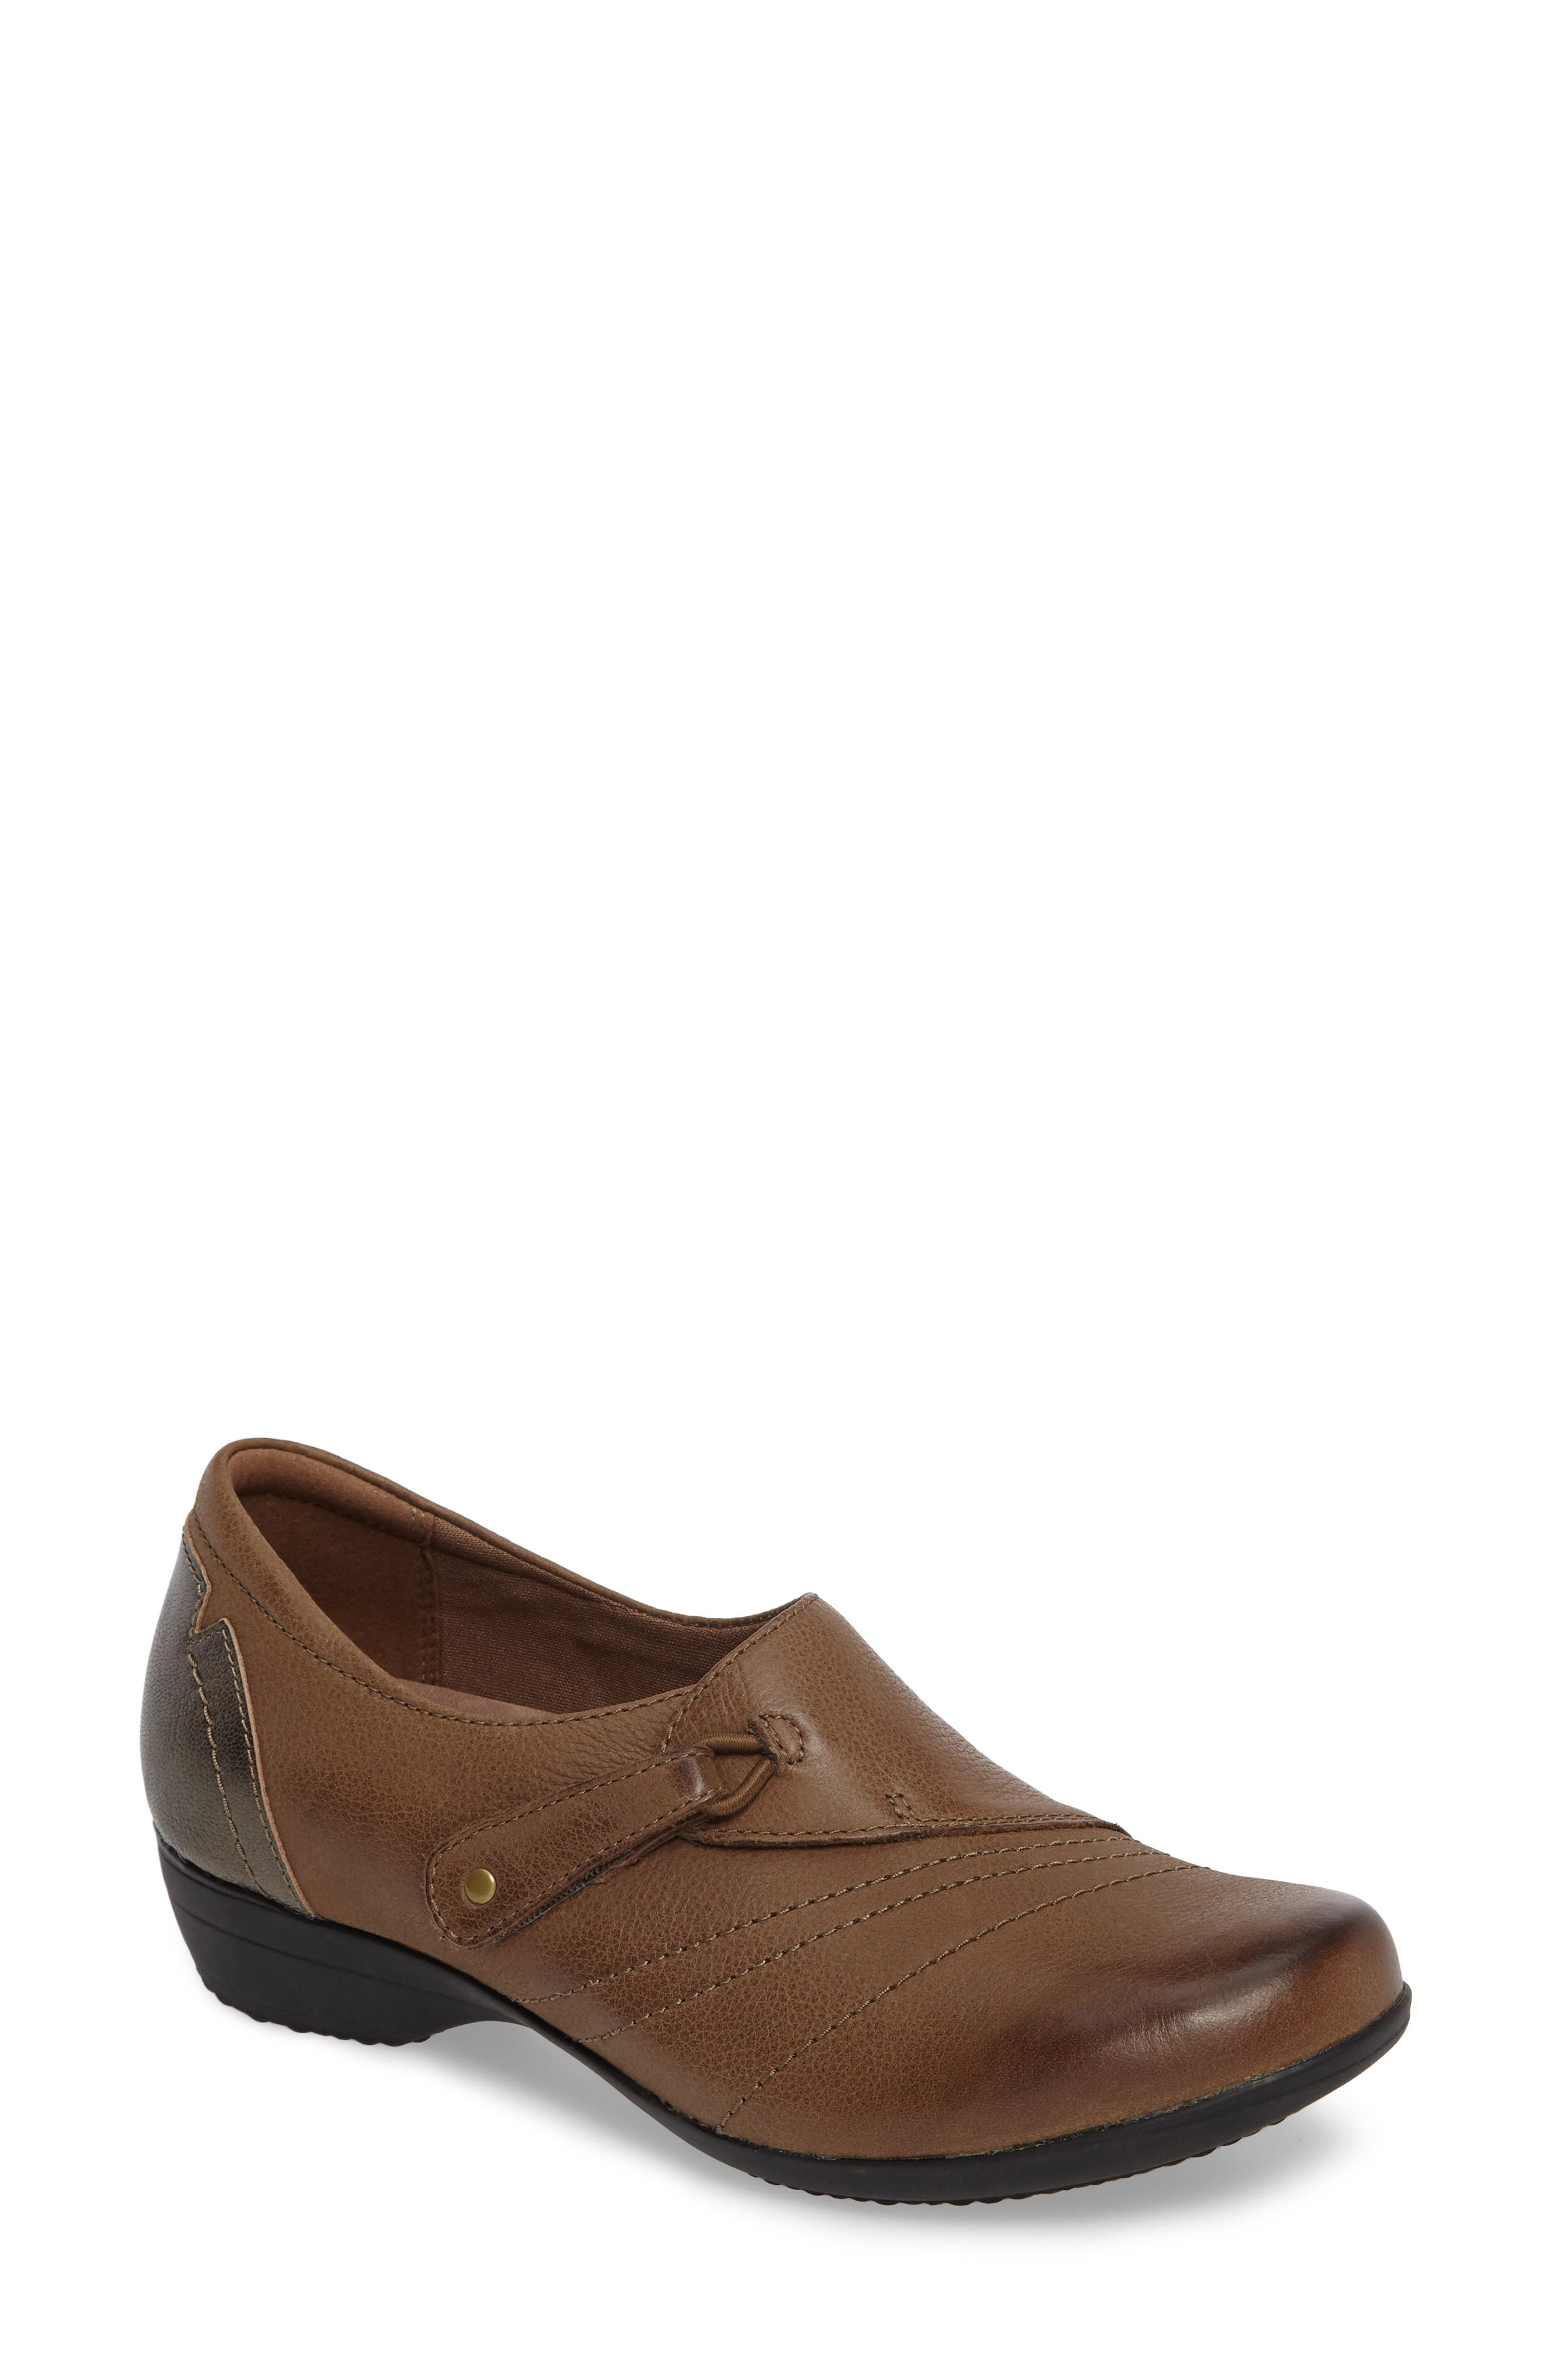 Franny Loafer,                             Main thumbnail 1, color,                             Taupe Burnished Nappa Leather